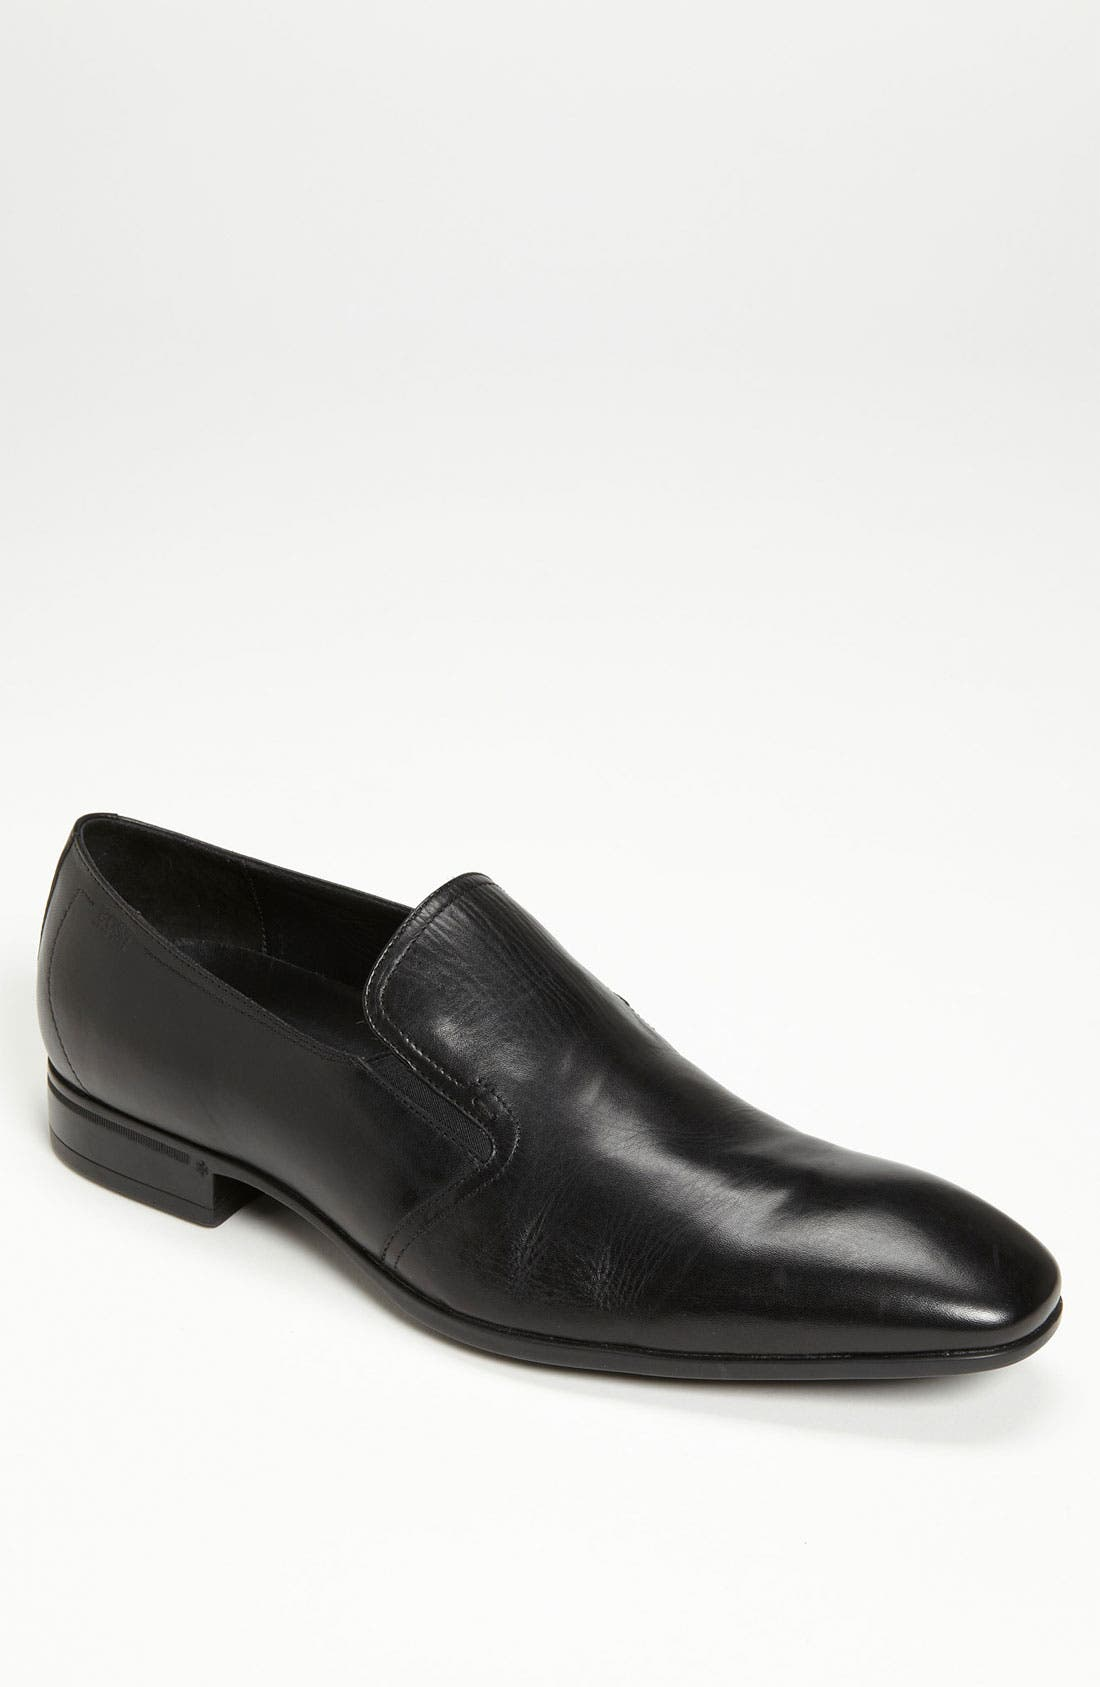 Main Image - BOSS Black 'Vermir' Loafer